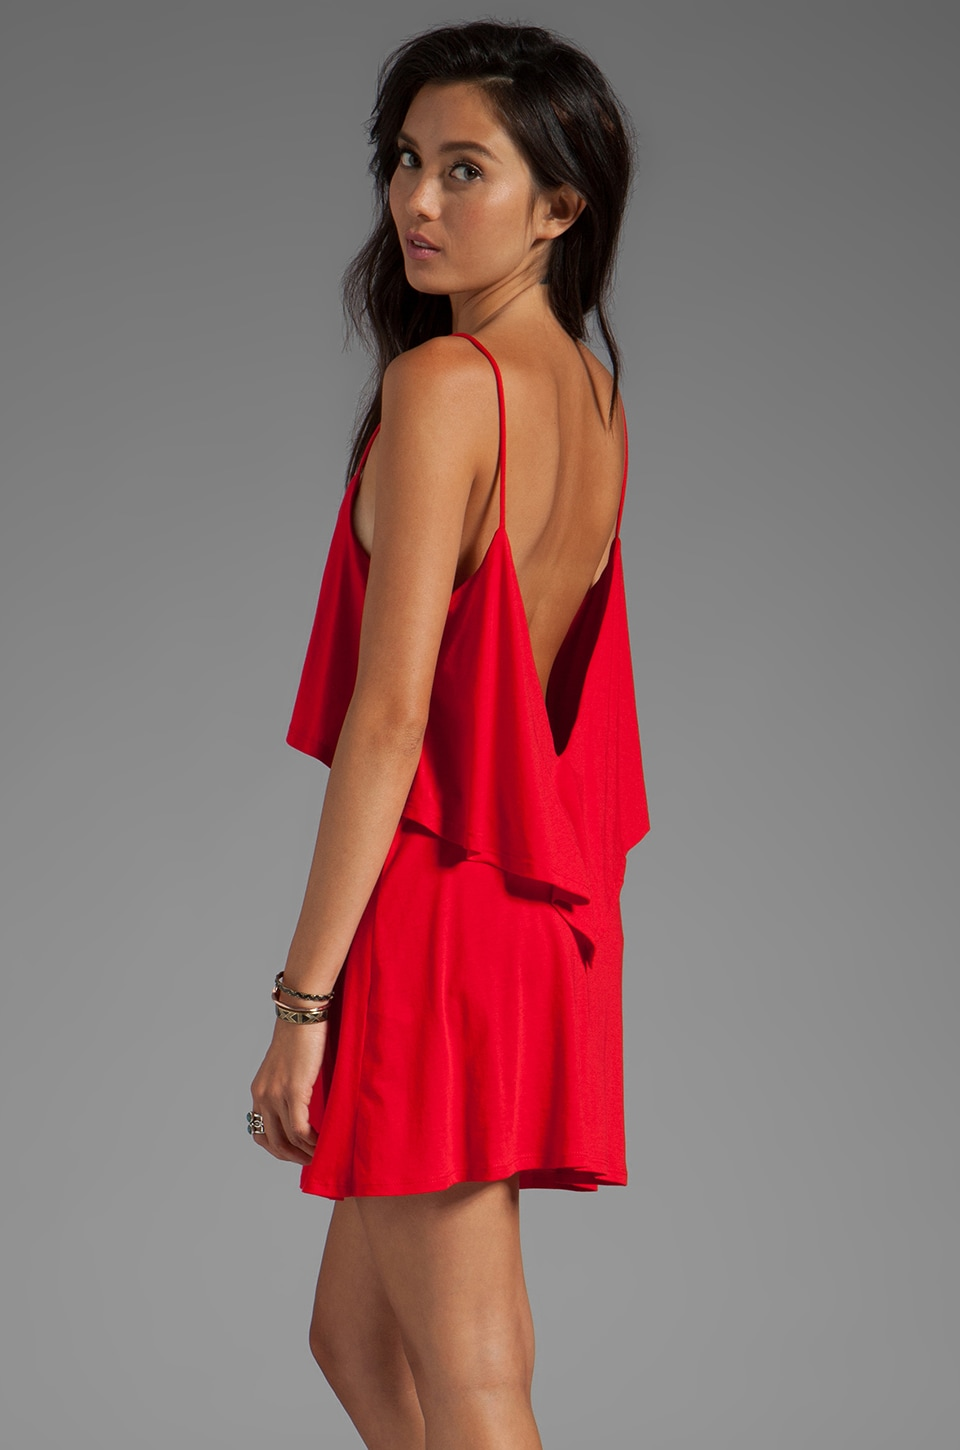 Blue Life Bachelorette Dress in Red